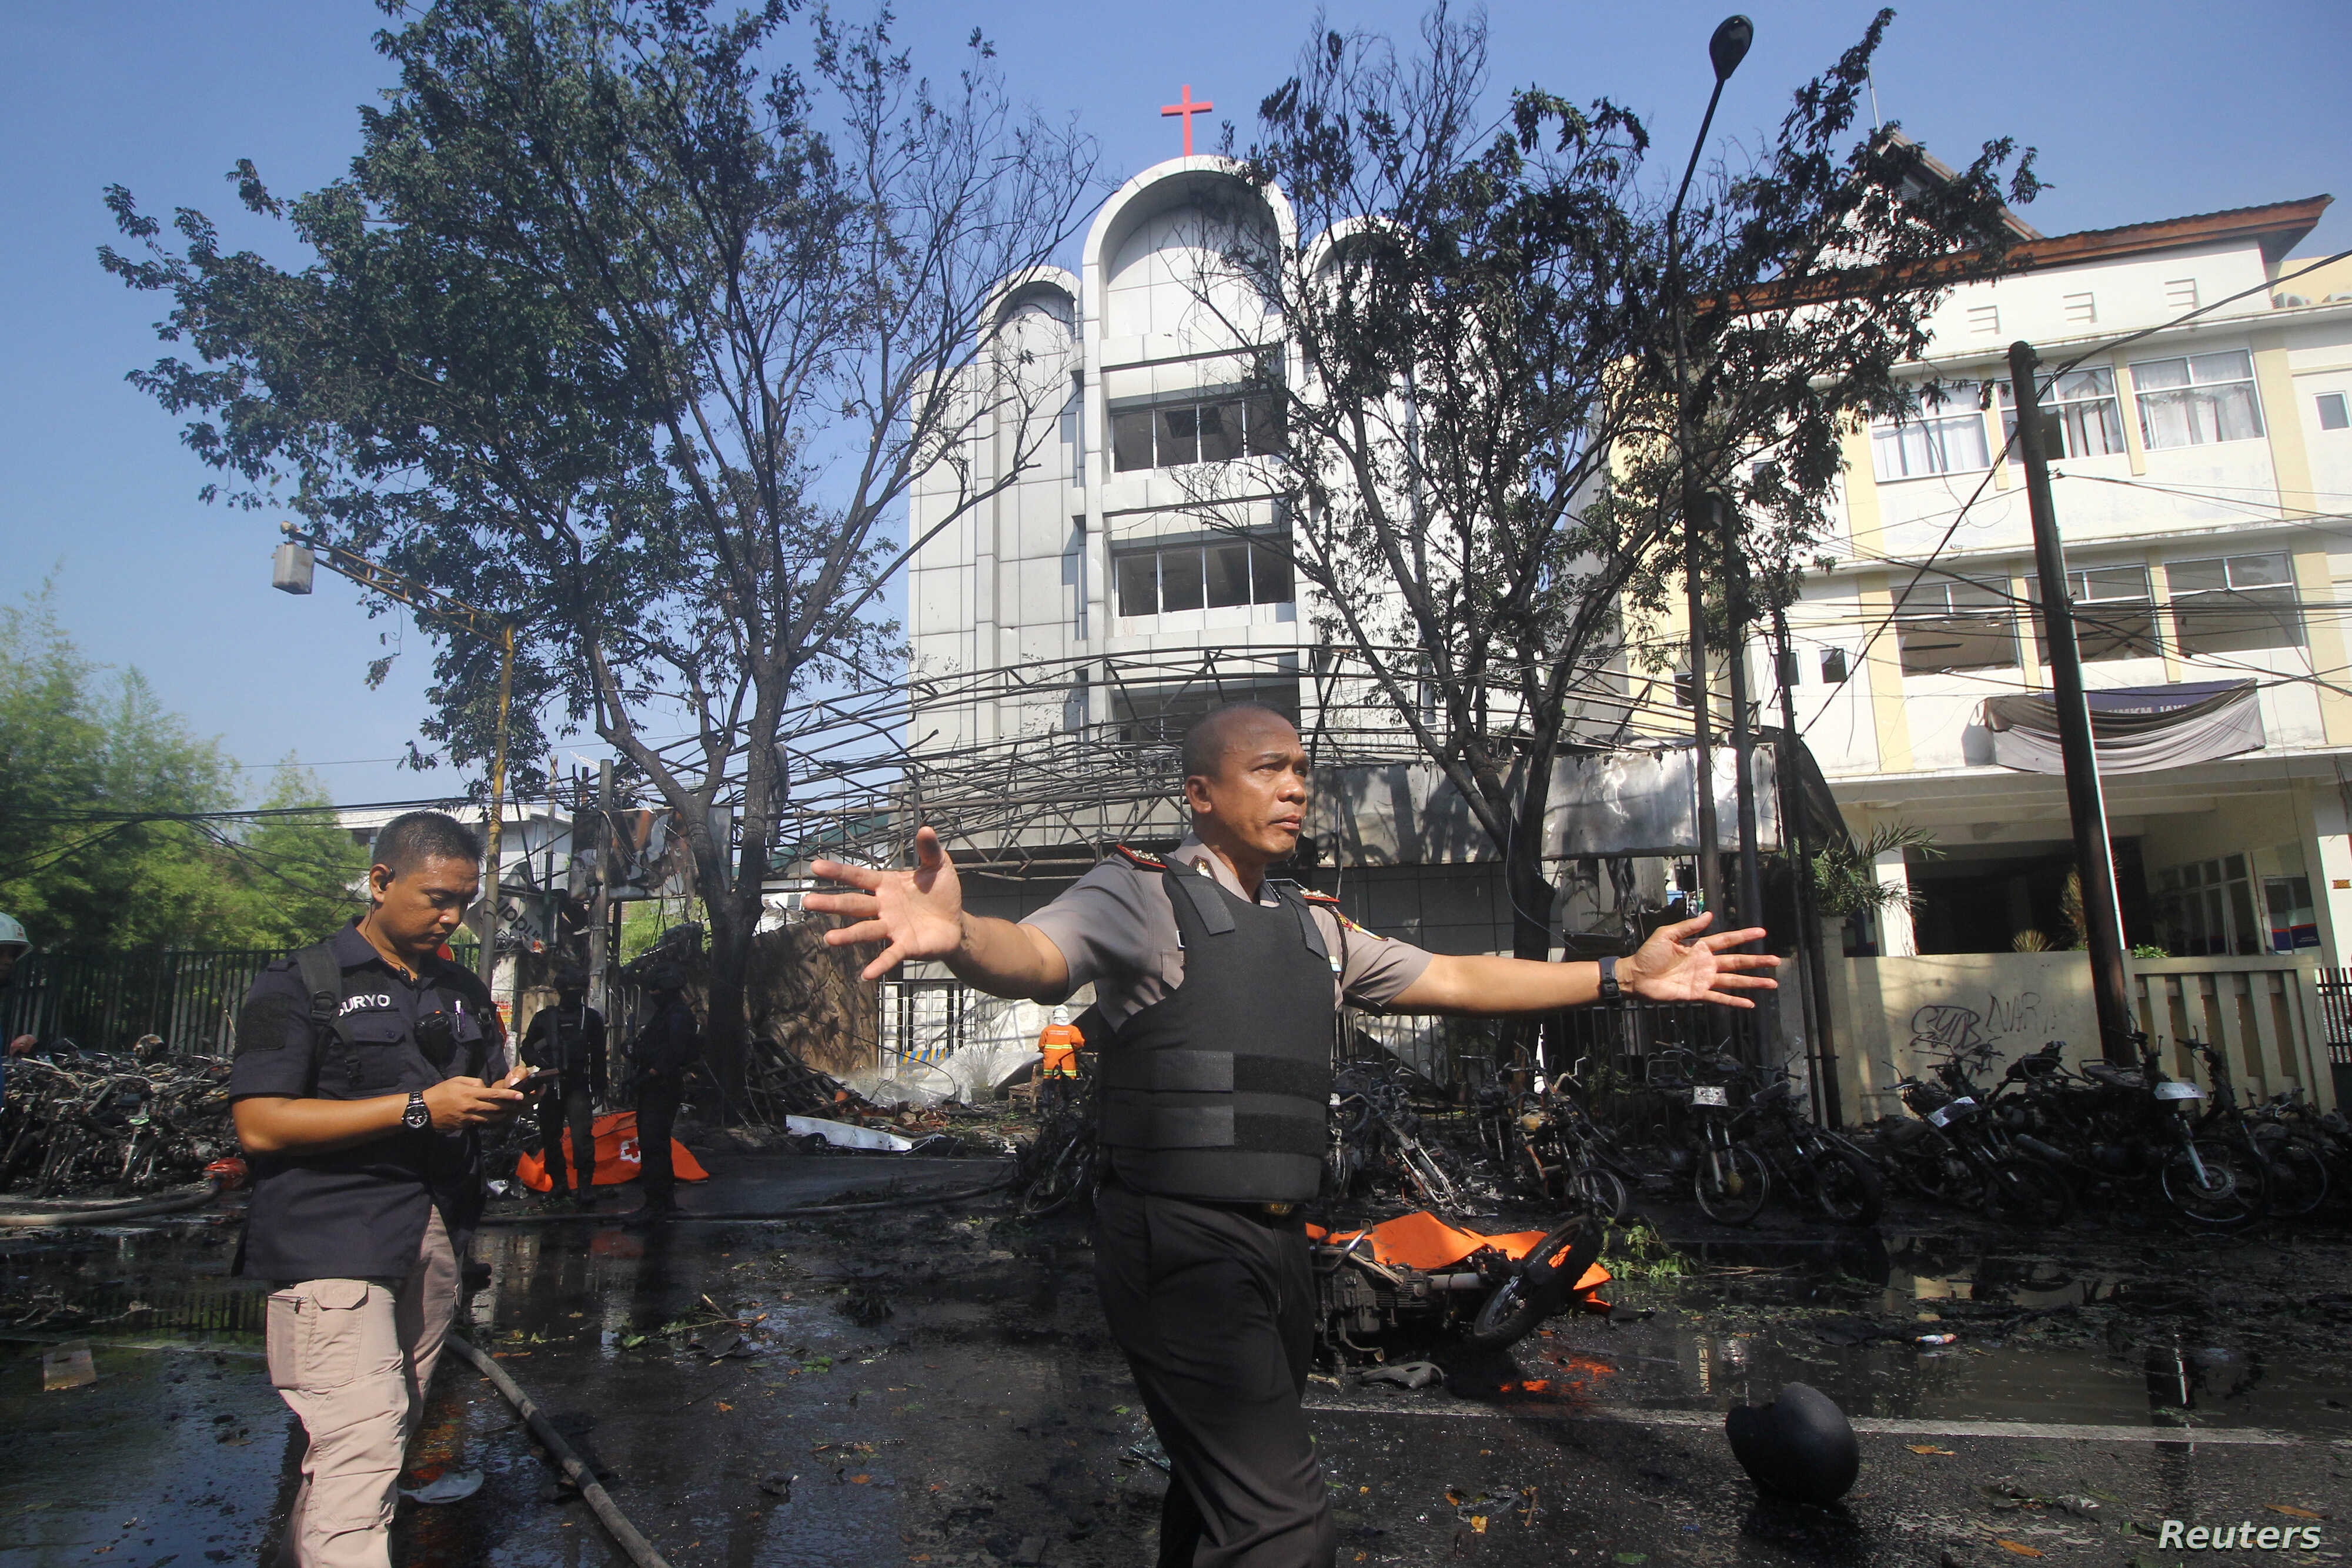 Police stand guard near the site of a blast at the Pentecost Church Central Surabaya, in Surabaya, East Java, Indonesia, May 13, 2018.